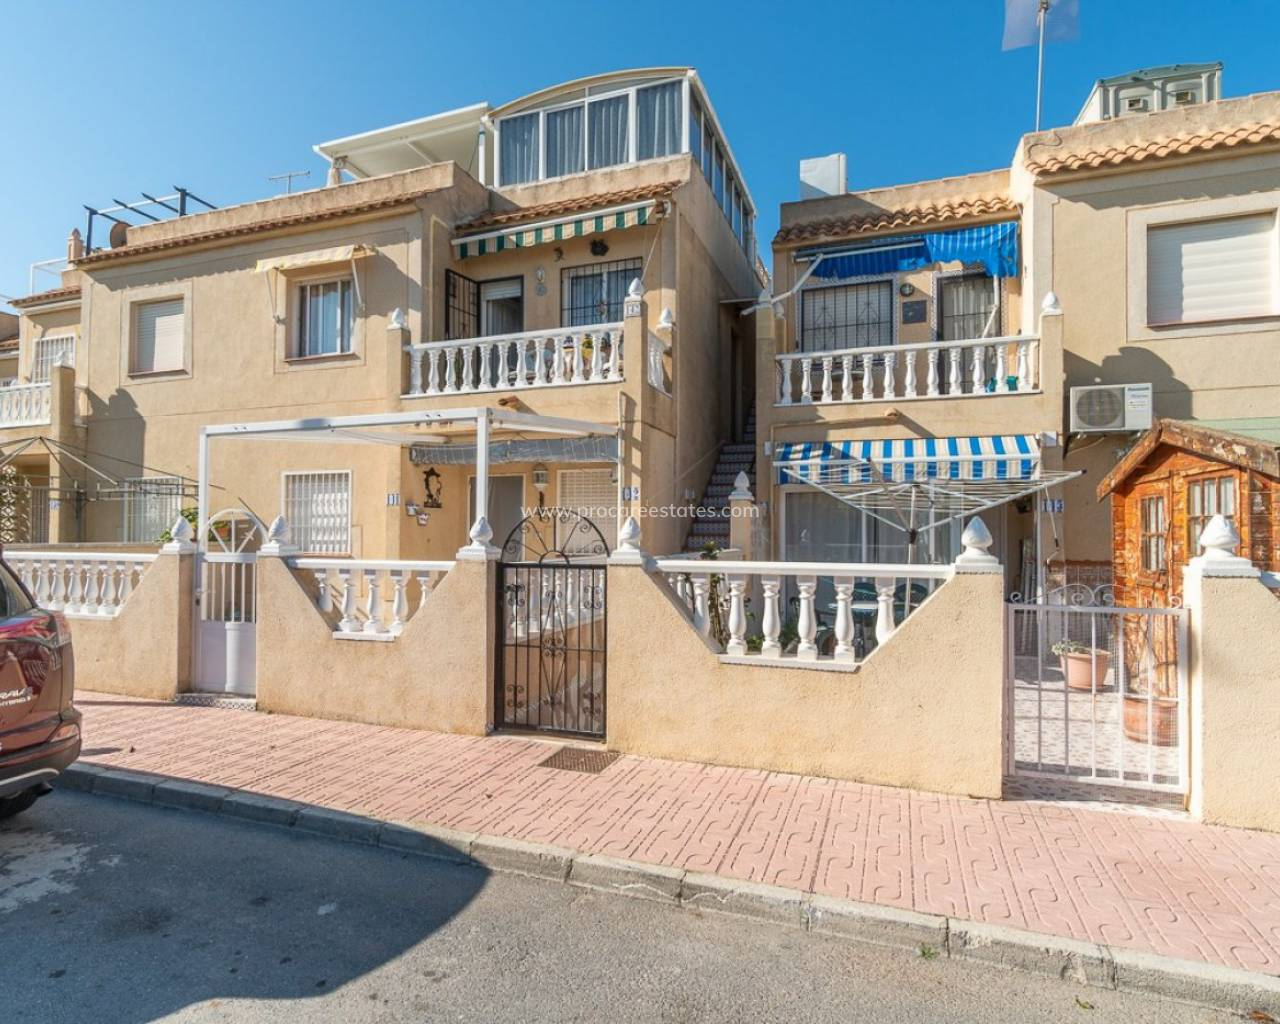 Townhouse - Resale - Torrevieja - Paraje natural